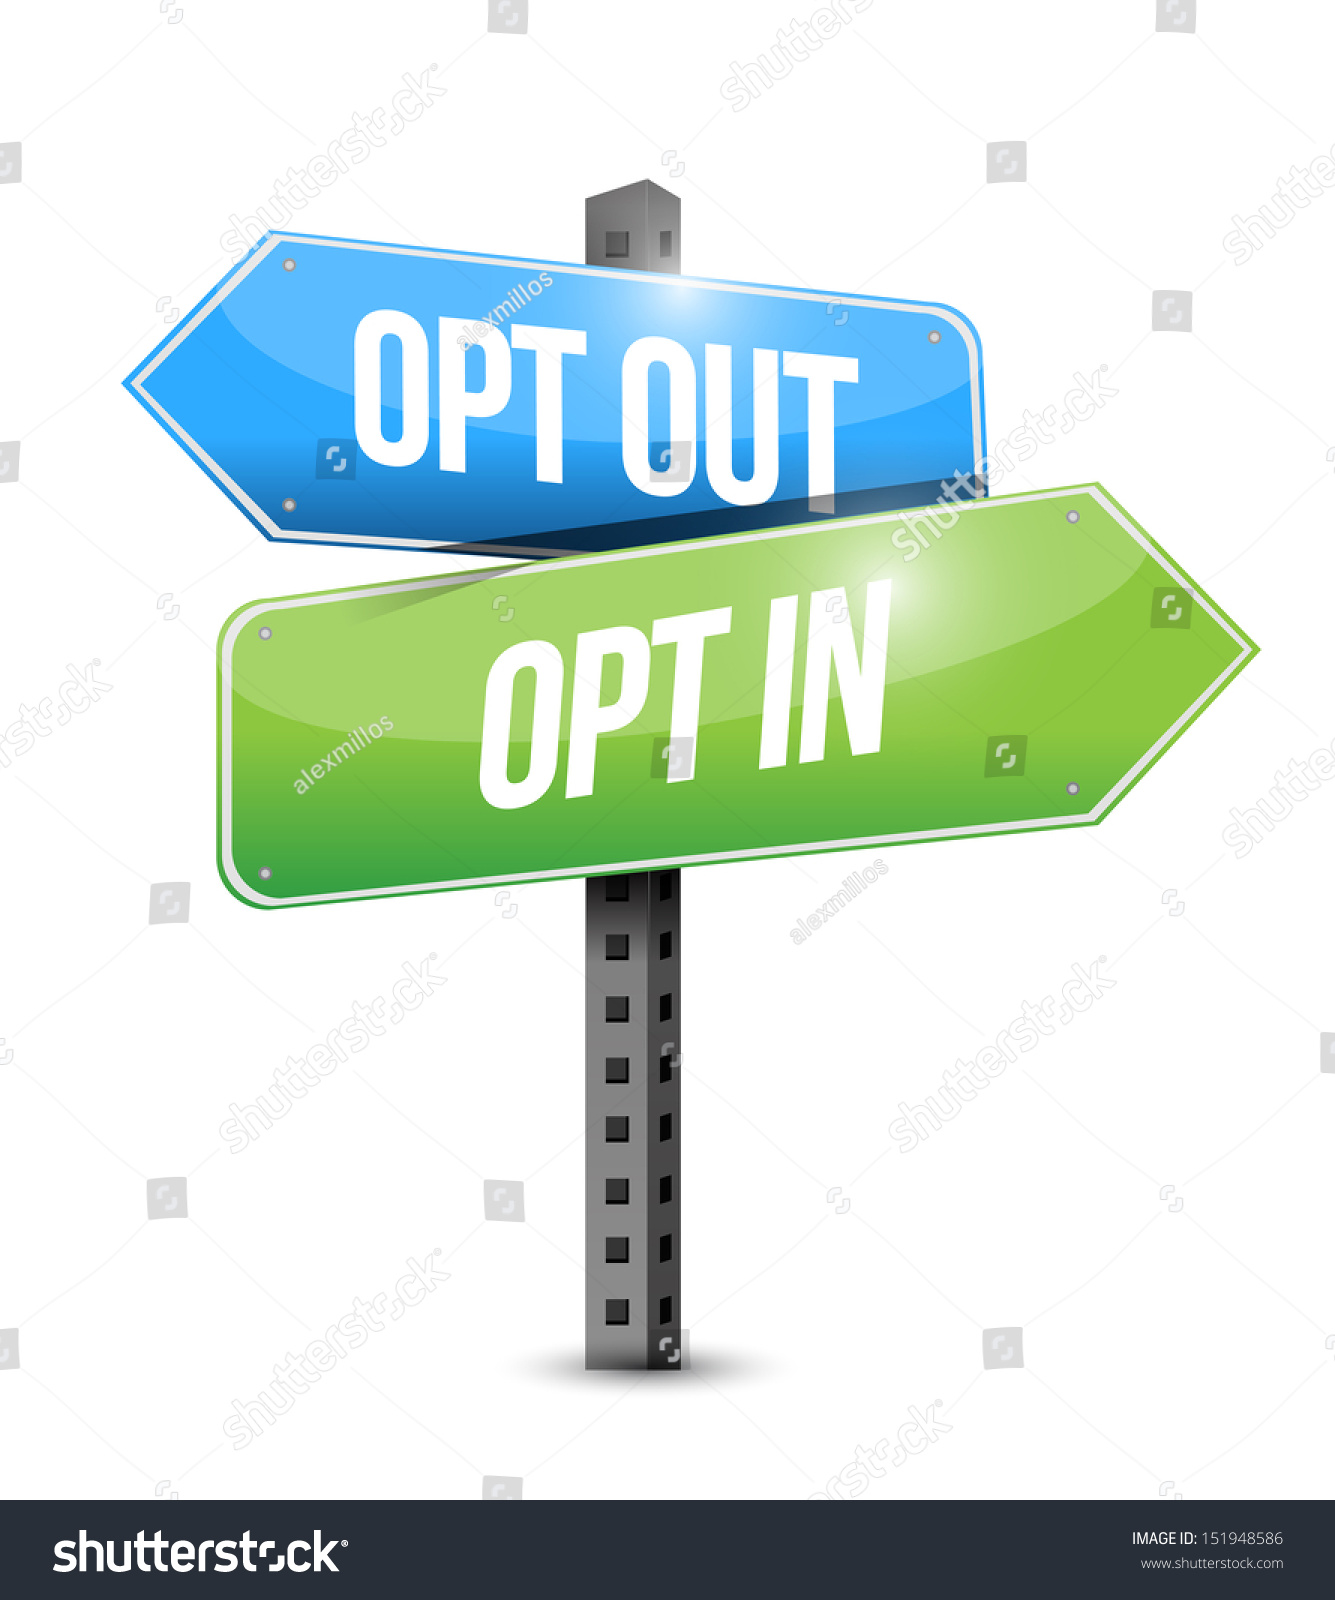 opt in opt out road sign illustration design over a white. Black Bedroom Furniture Sets. Home Design Ideas